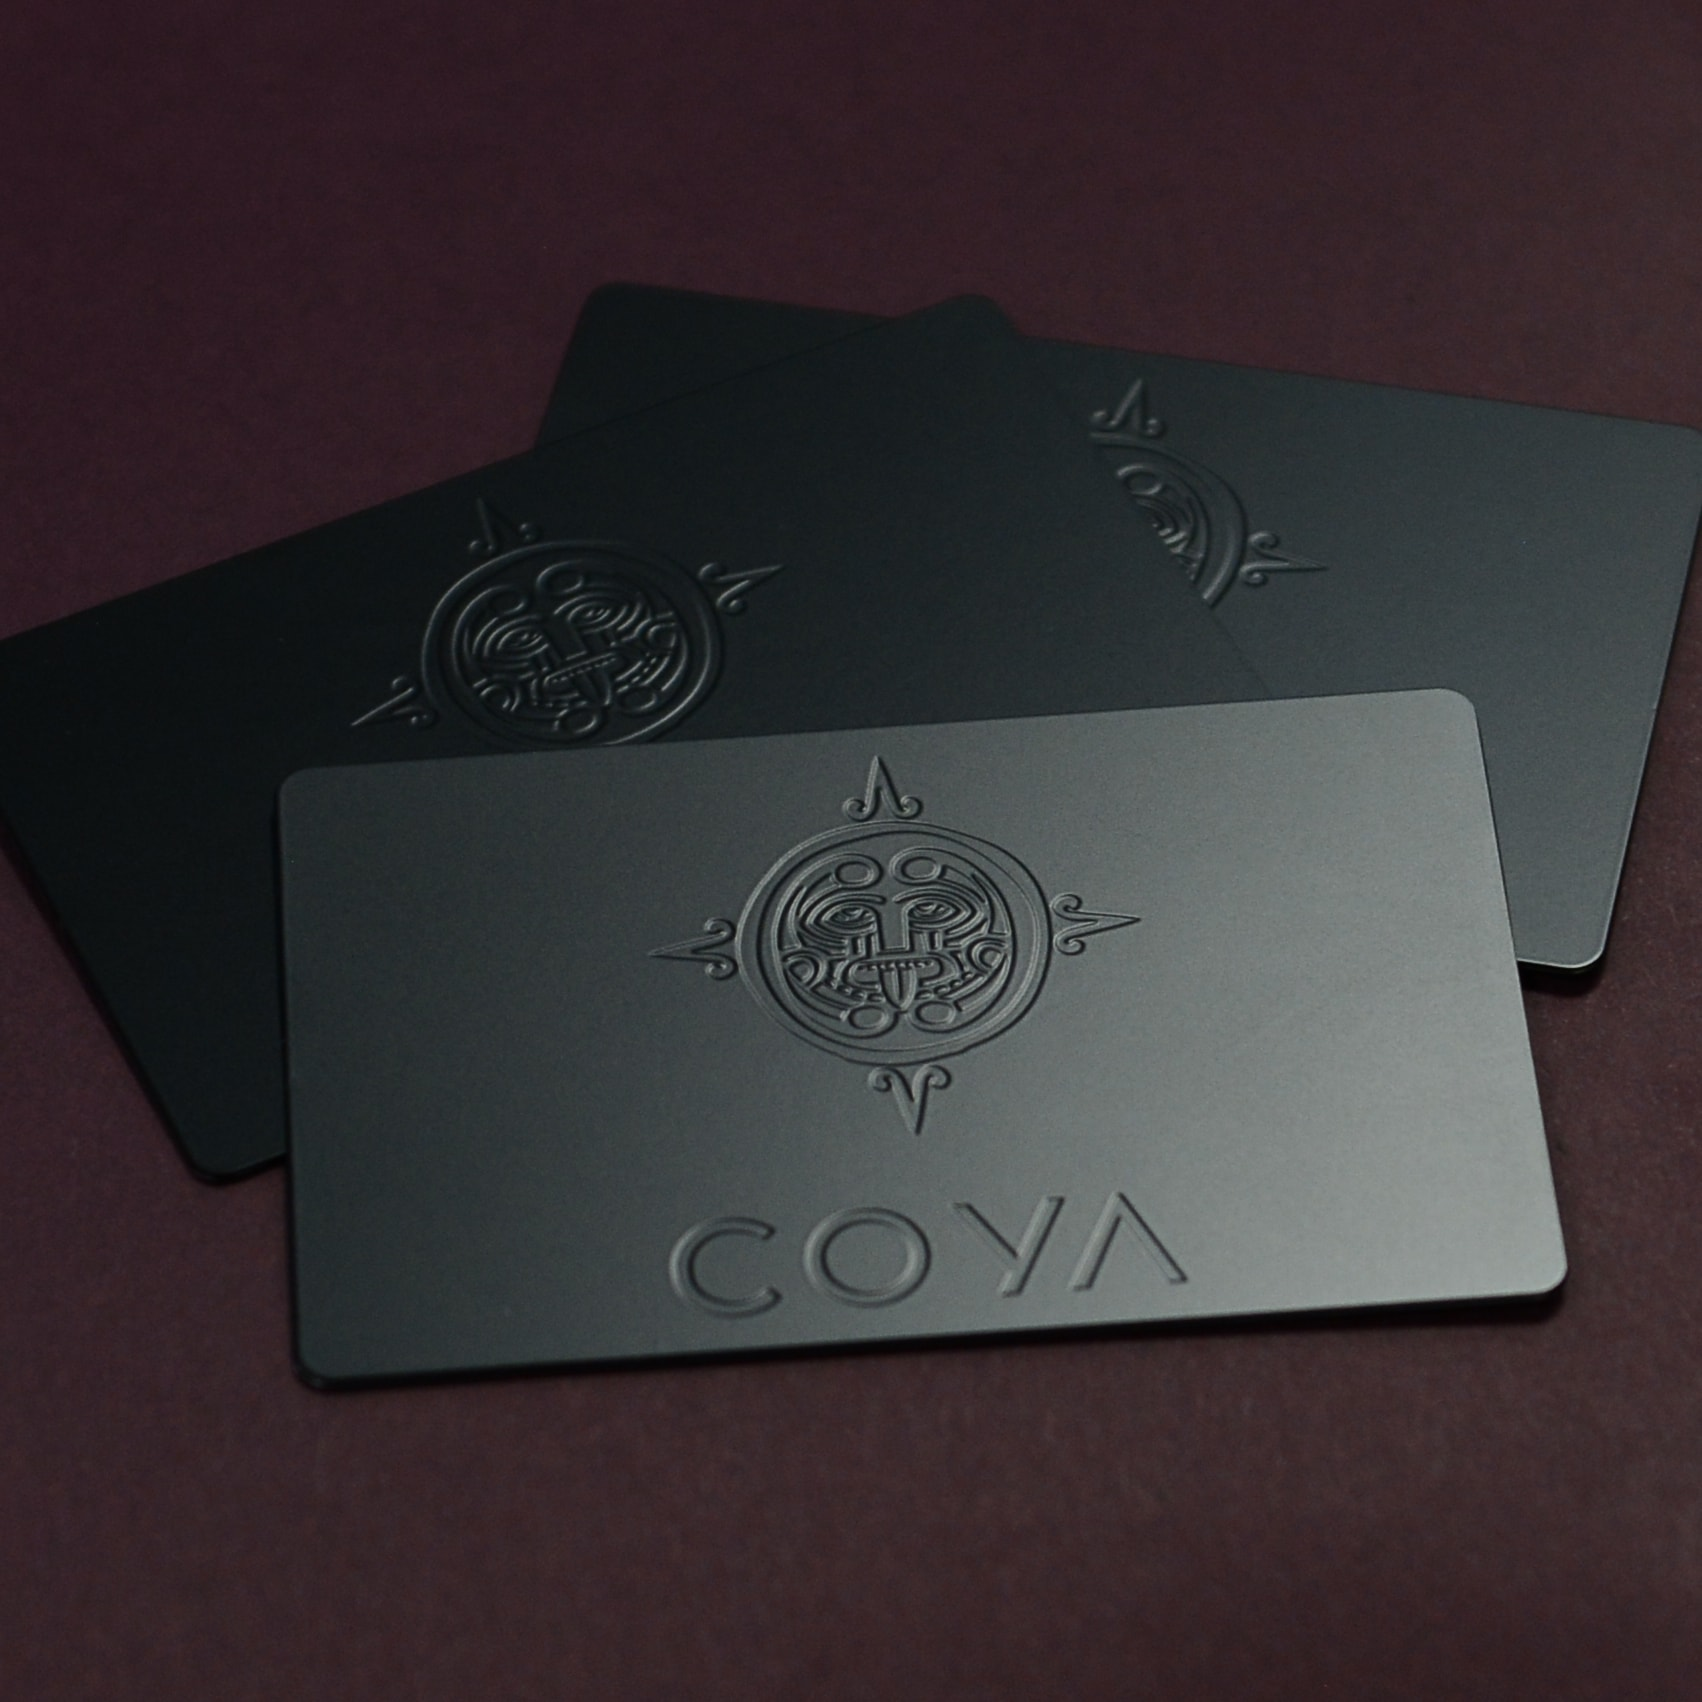 Coya Matt Black Metal Cards